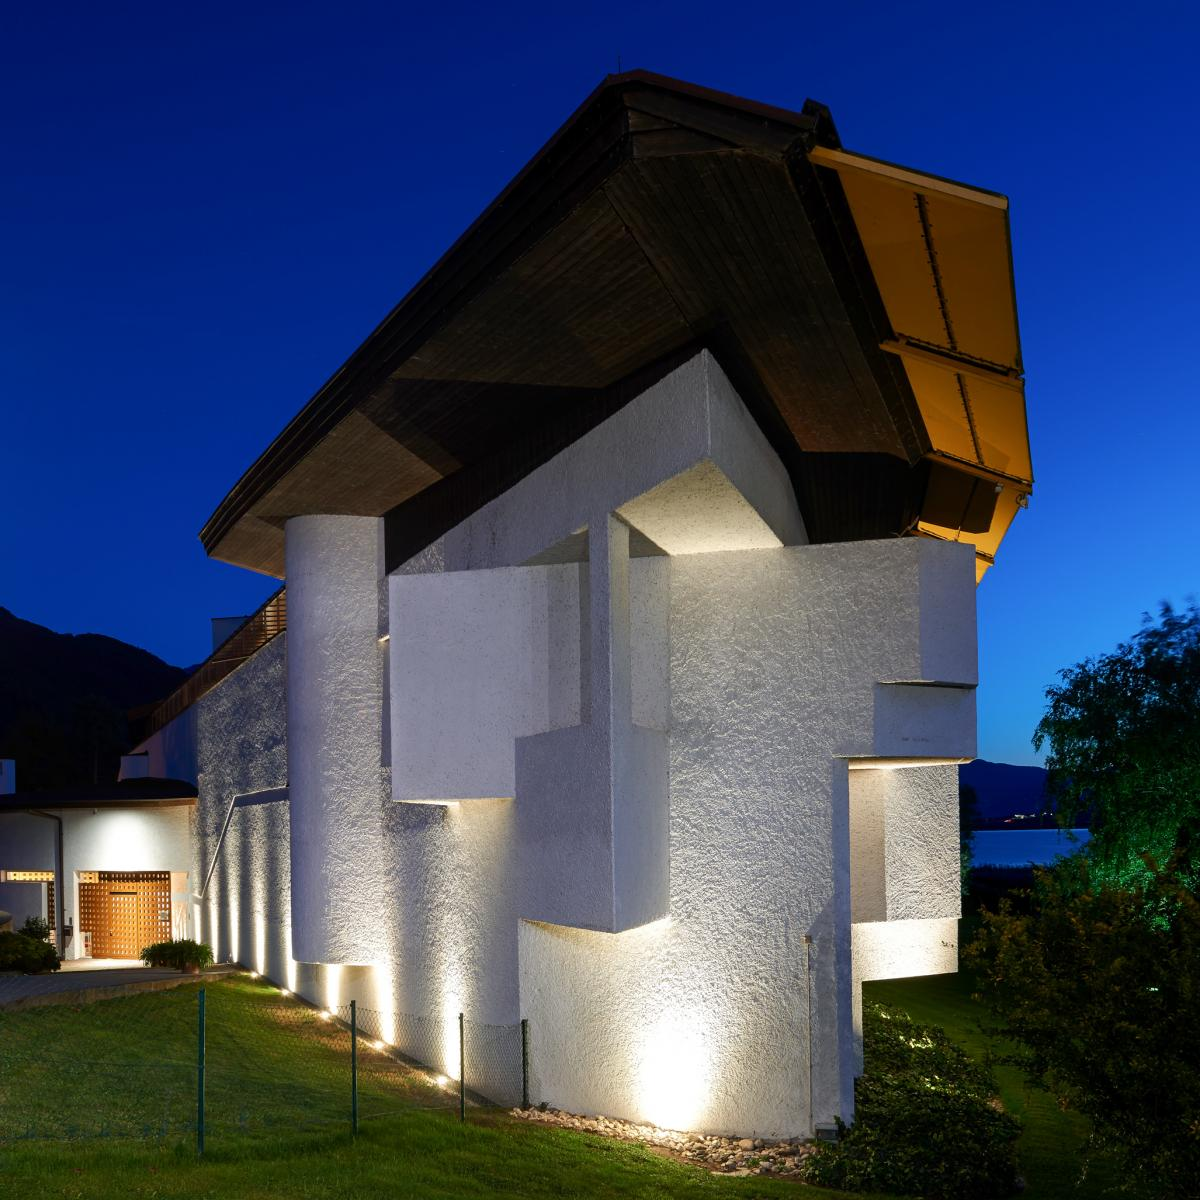 Yet he also knew how to take creative liberties to fill the gap between the natural and populated landscape. The language of architecture changes over time ... & Architecture / Seehotel Ambach